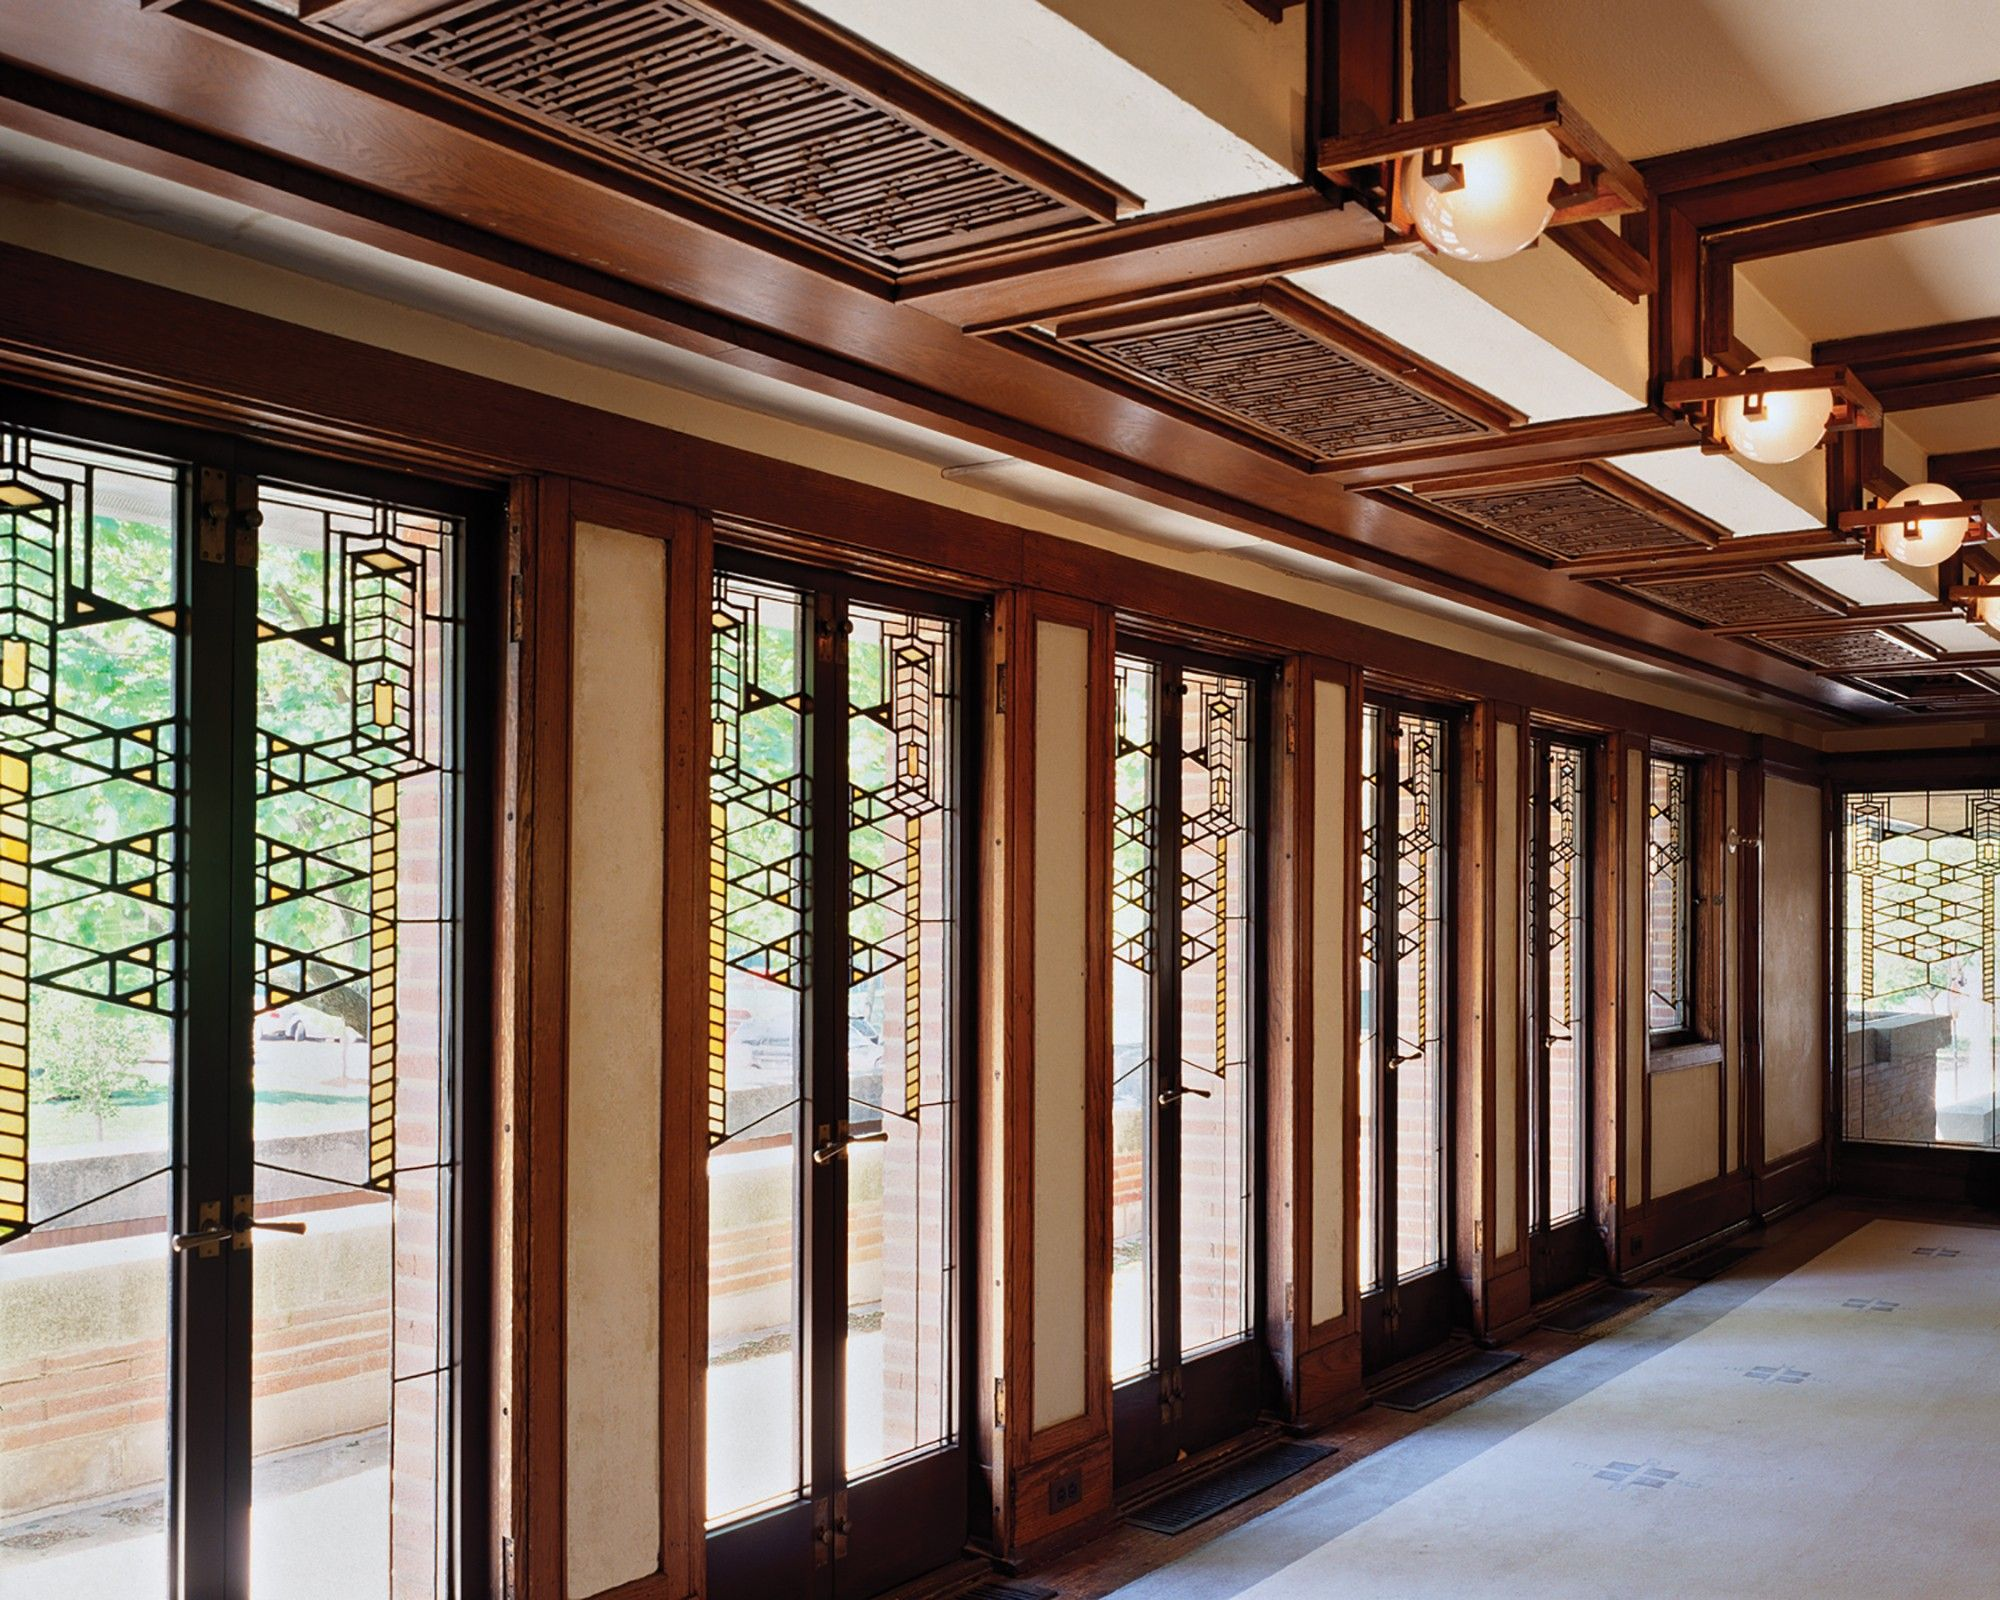 Visit The Frank Lloyd Wright Trust For Details On Booking A Guided Interior  Tour.